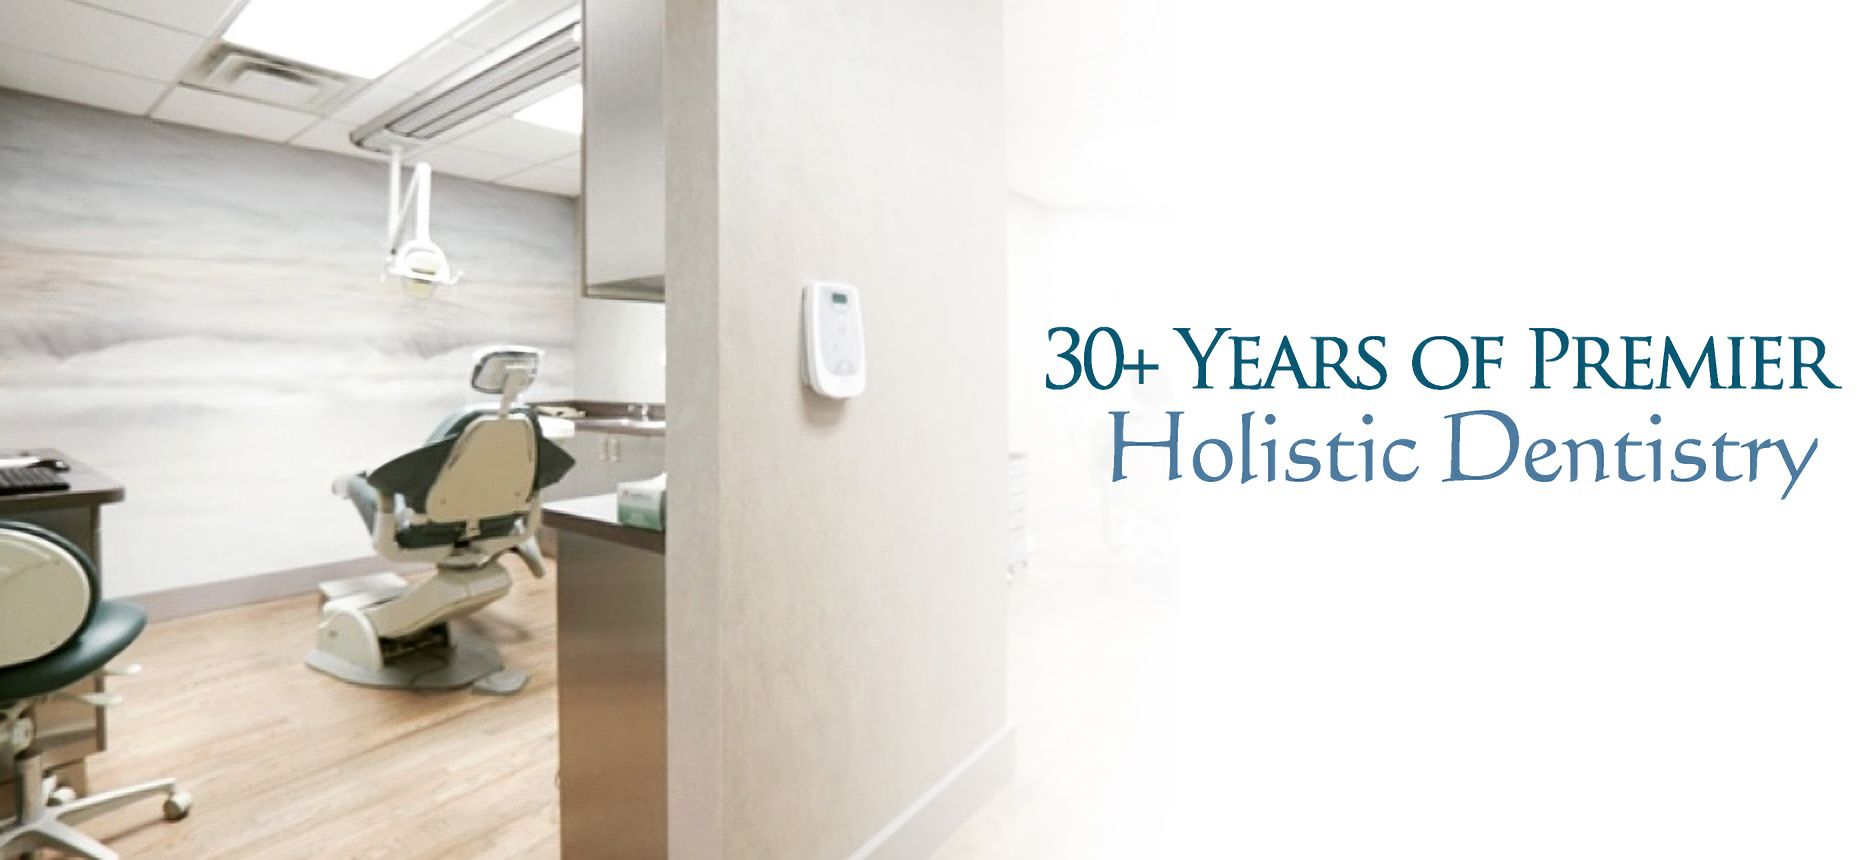 Dr Lewis Gross Holistic Dentist Nyc Holistic Dentistry